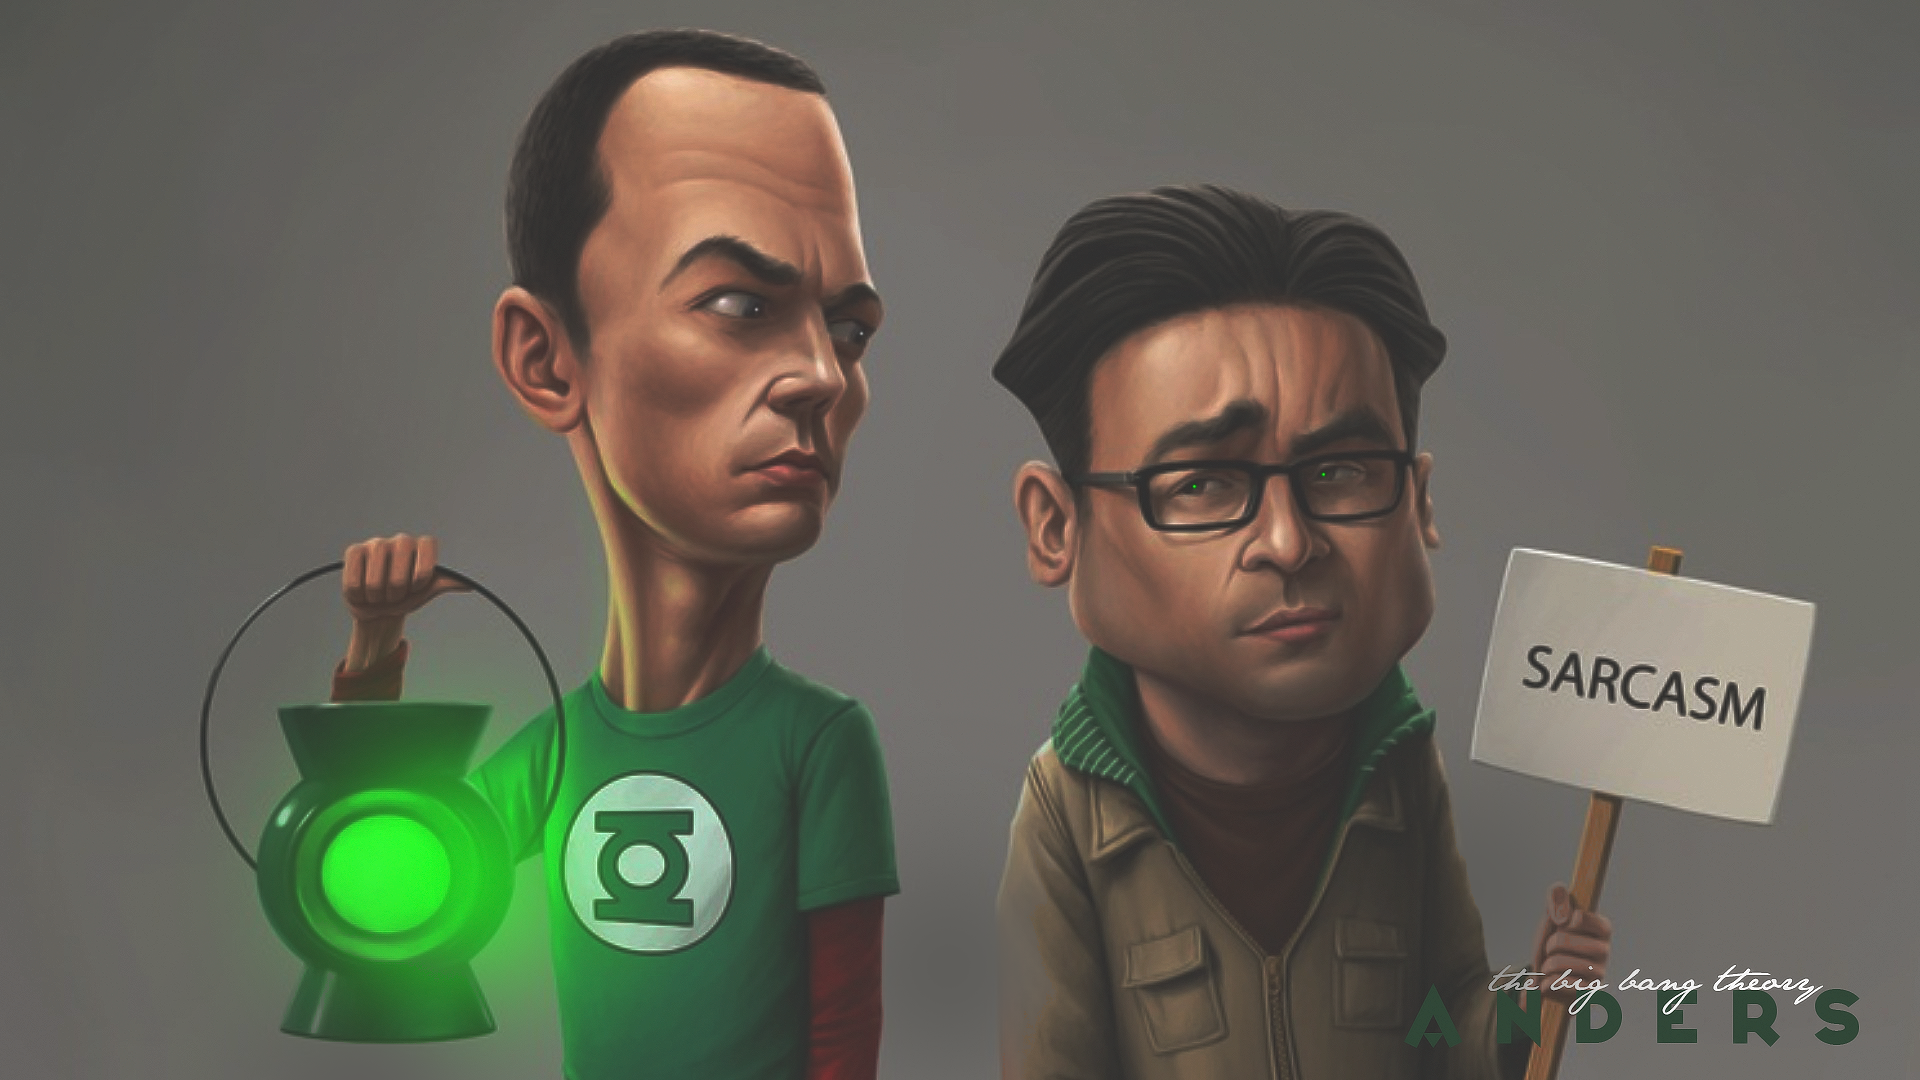 sheldon_cooper_and_leonard_by_zhiken-d5h